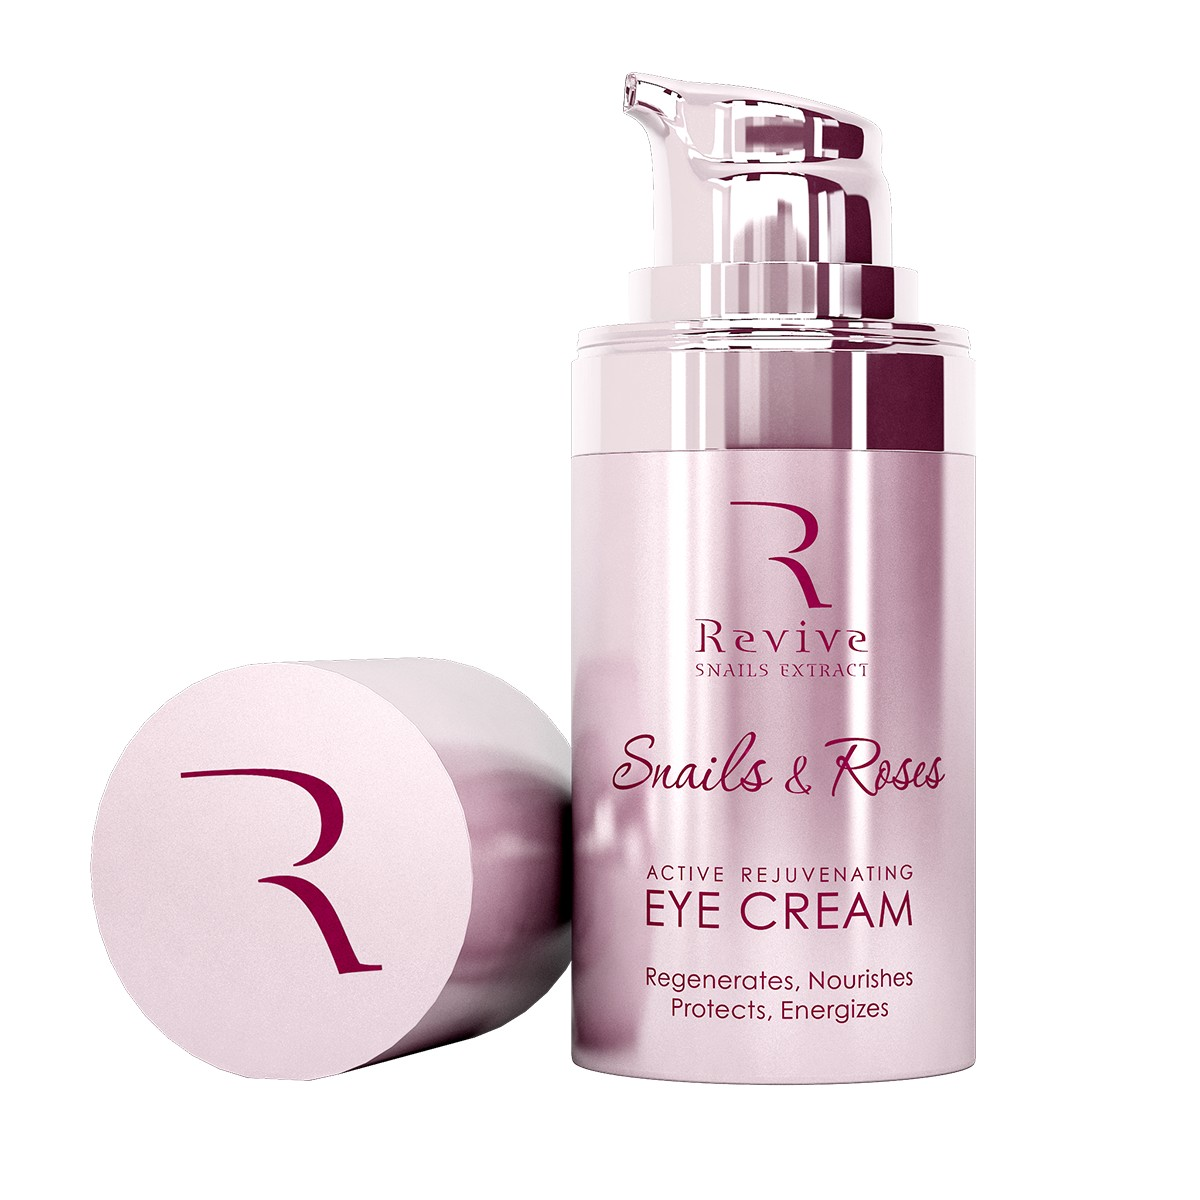 Intensive rejuvenating eye cream with rose oil and snail extract Revive